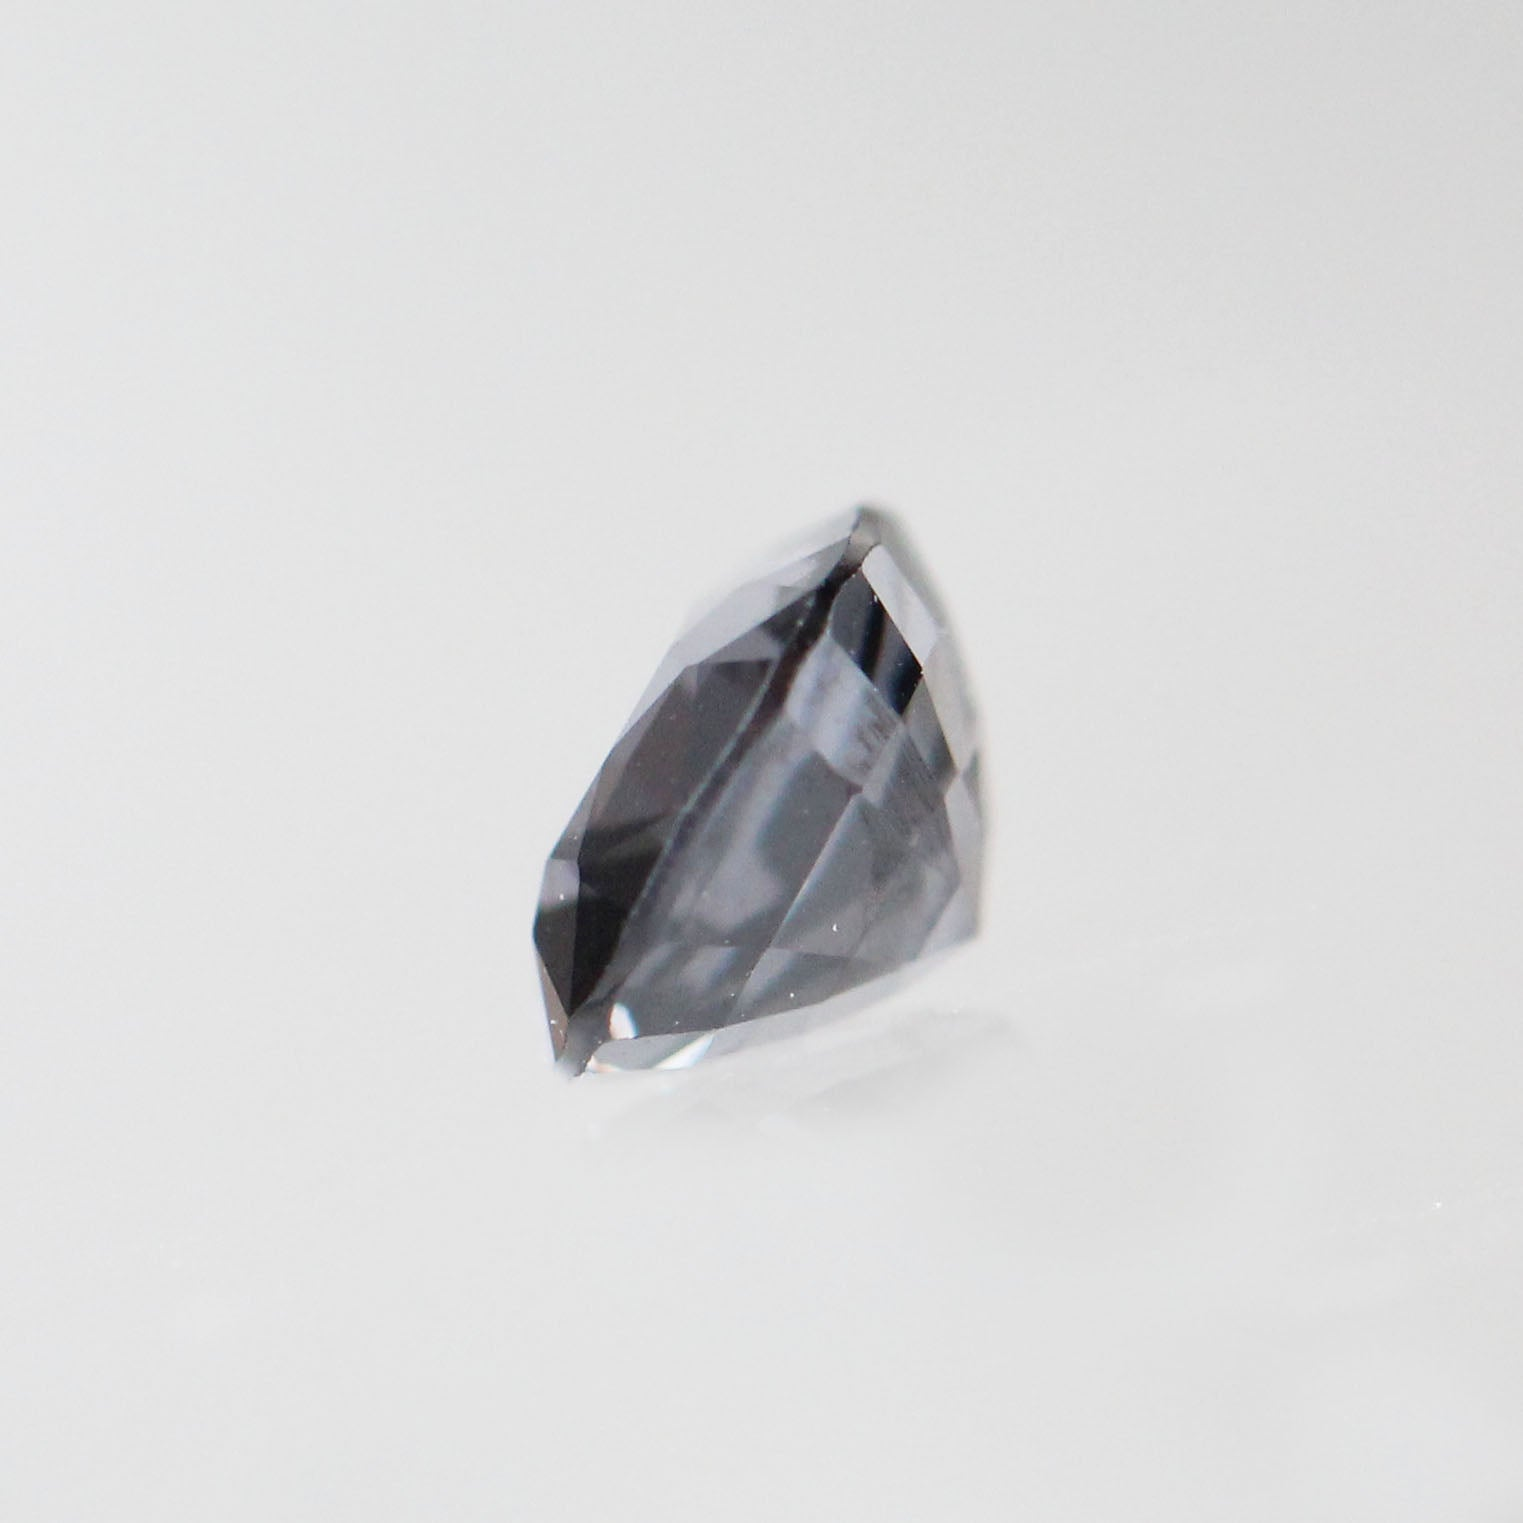 1.56 Carat Cushion Spinel for Custom Work - Inventory Code CBSP156 - Celestial Diamonds ® by Midwinter Co.